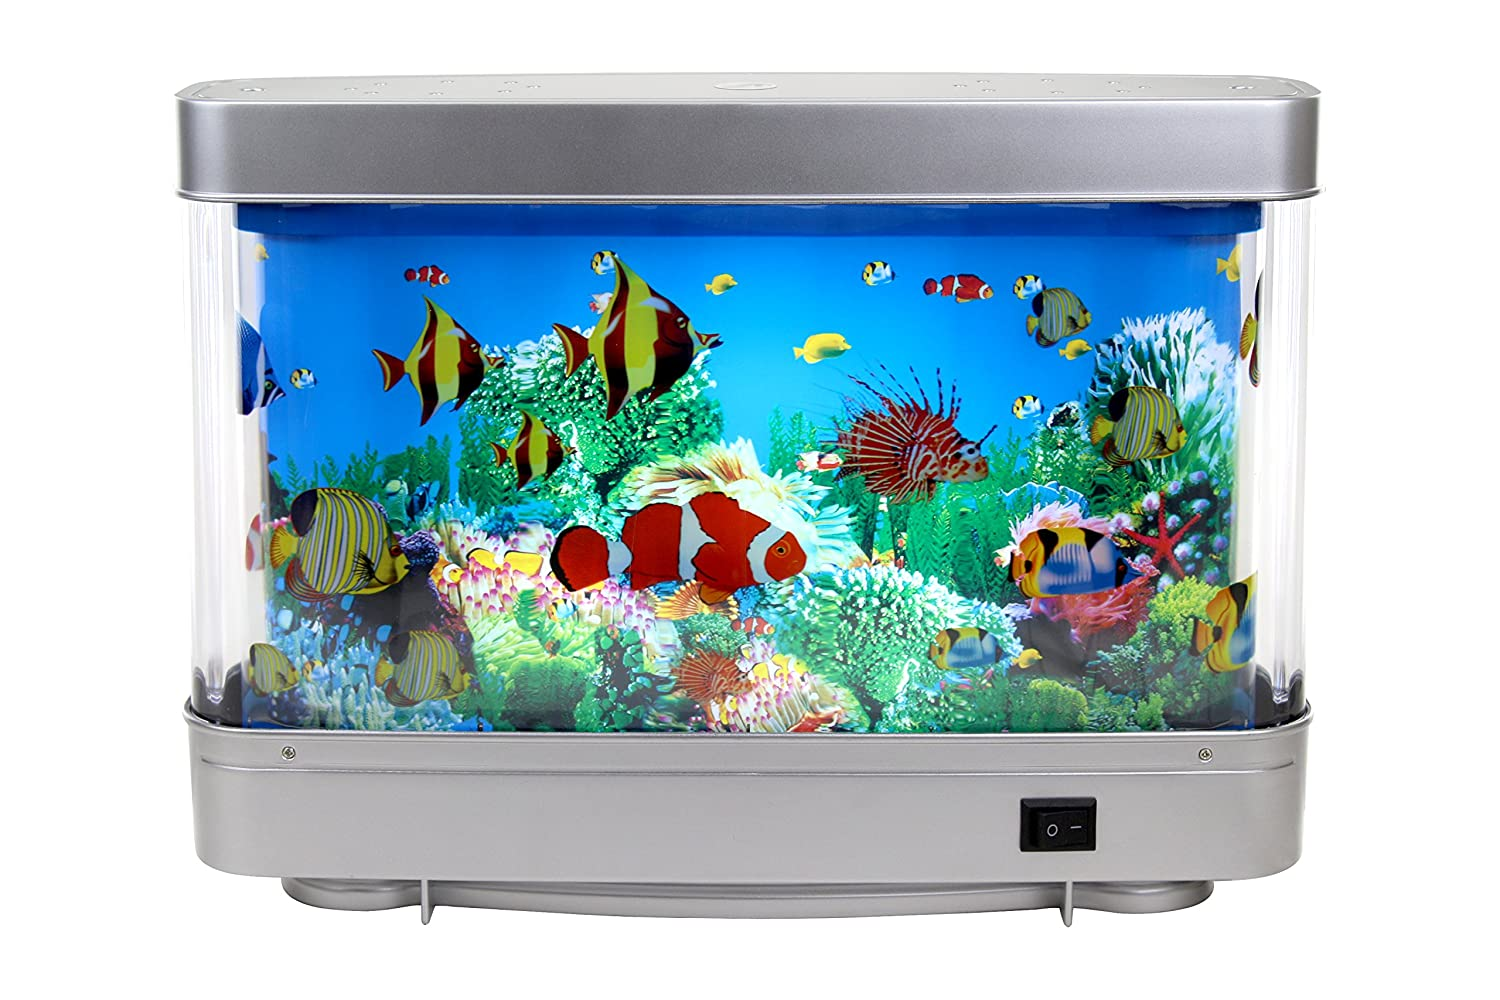 Fish Aquarium Rates In Delhi - Lightahead artificial tropical fish aquarium decorative lamp